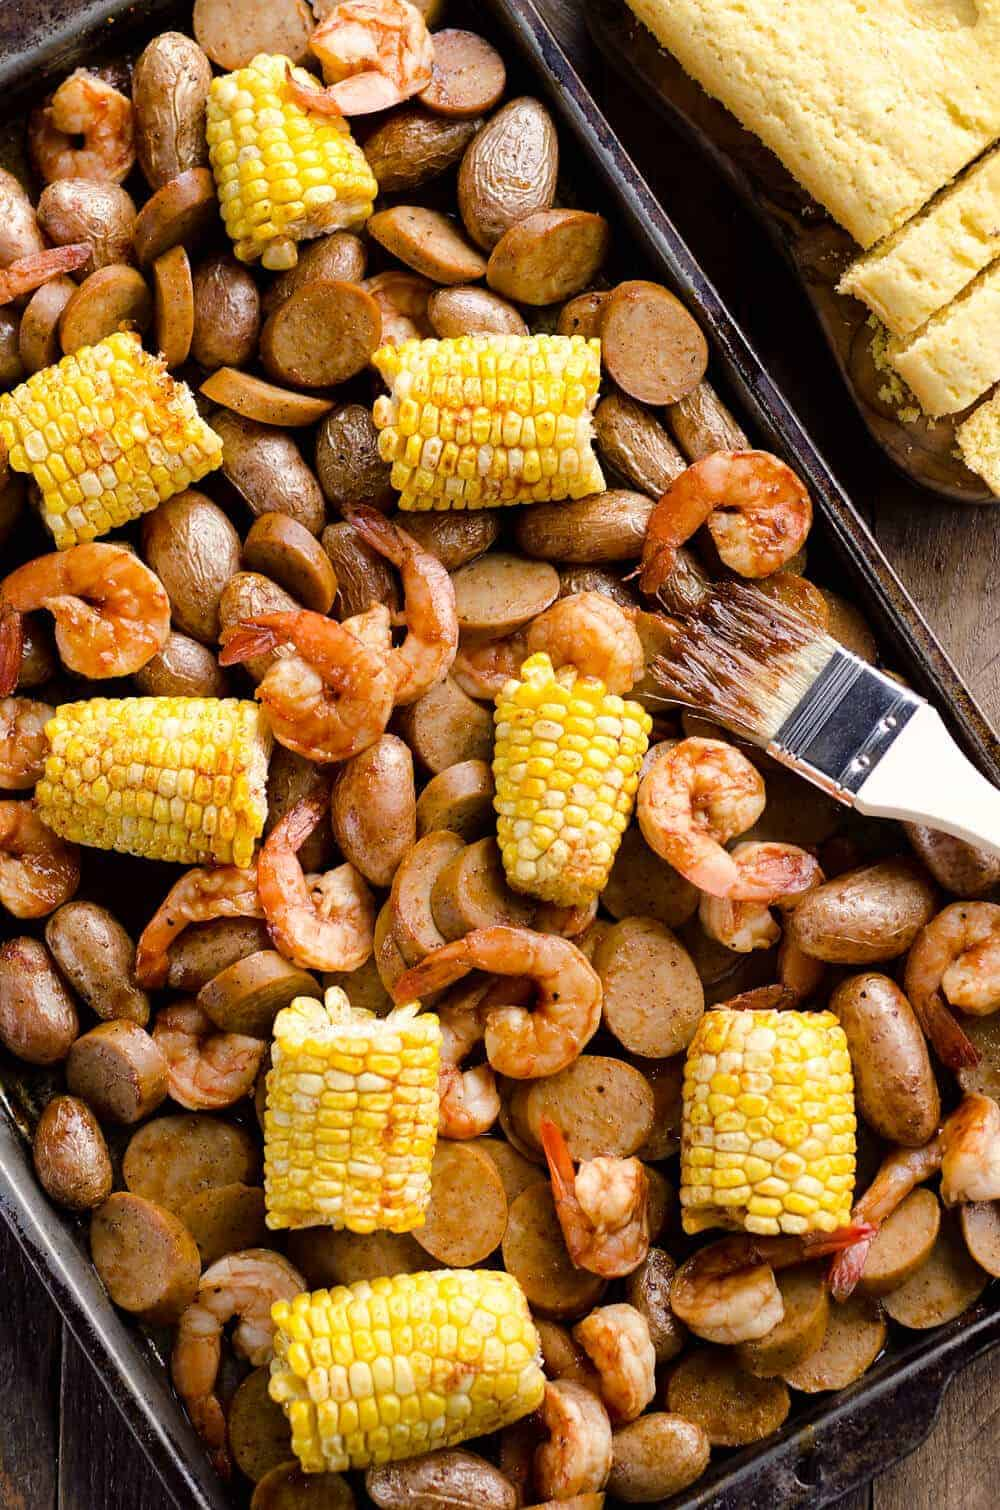 BBQ Shrimp Sausage Sheet Pan Dinner by The Creative Bite | Easy Sheet Pan Dinner Ideas that Make Dinner Easy and Delicious!